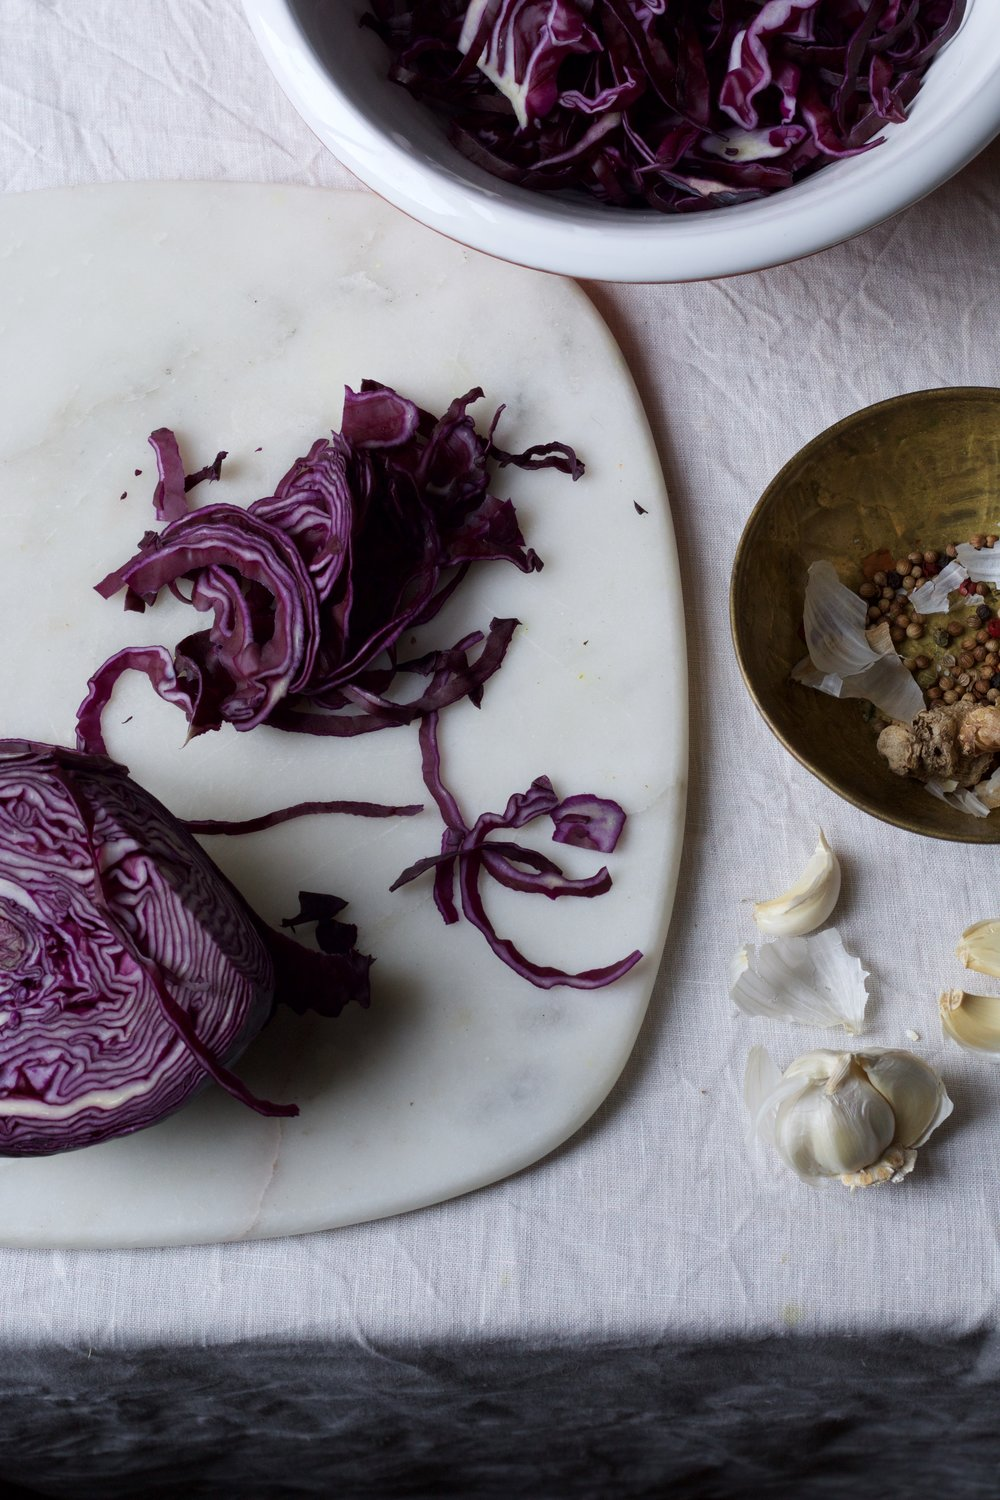 Saurkraut recipe by Jette Virdi, food stylist based in London and Ireland and Portugal